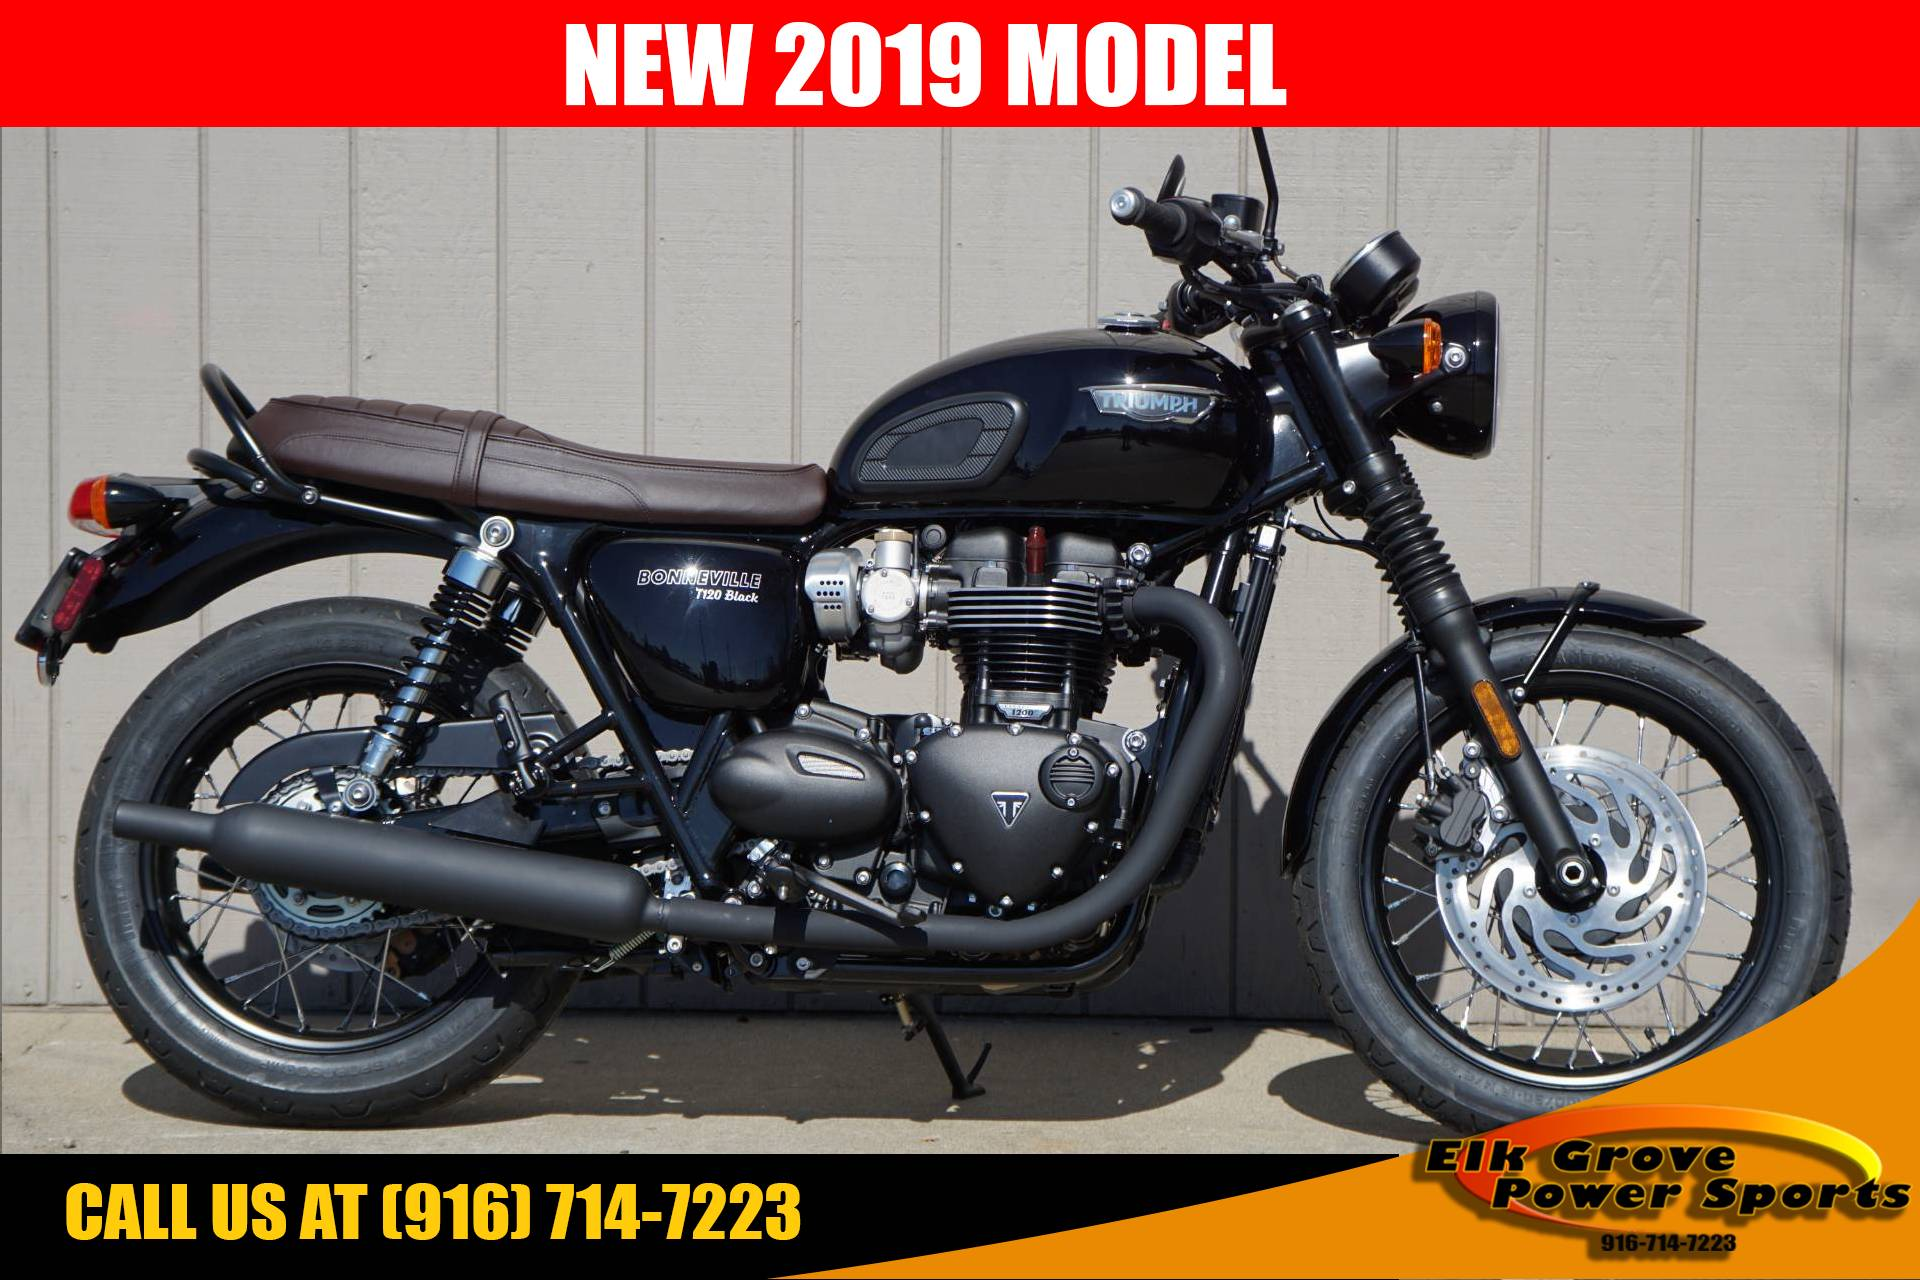 New 2019 Triumph Bonneville T120 Black Motorcycles In Elk Grove Ca